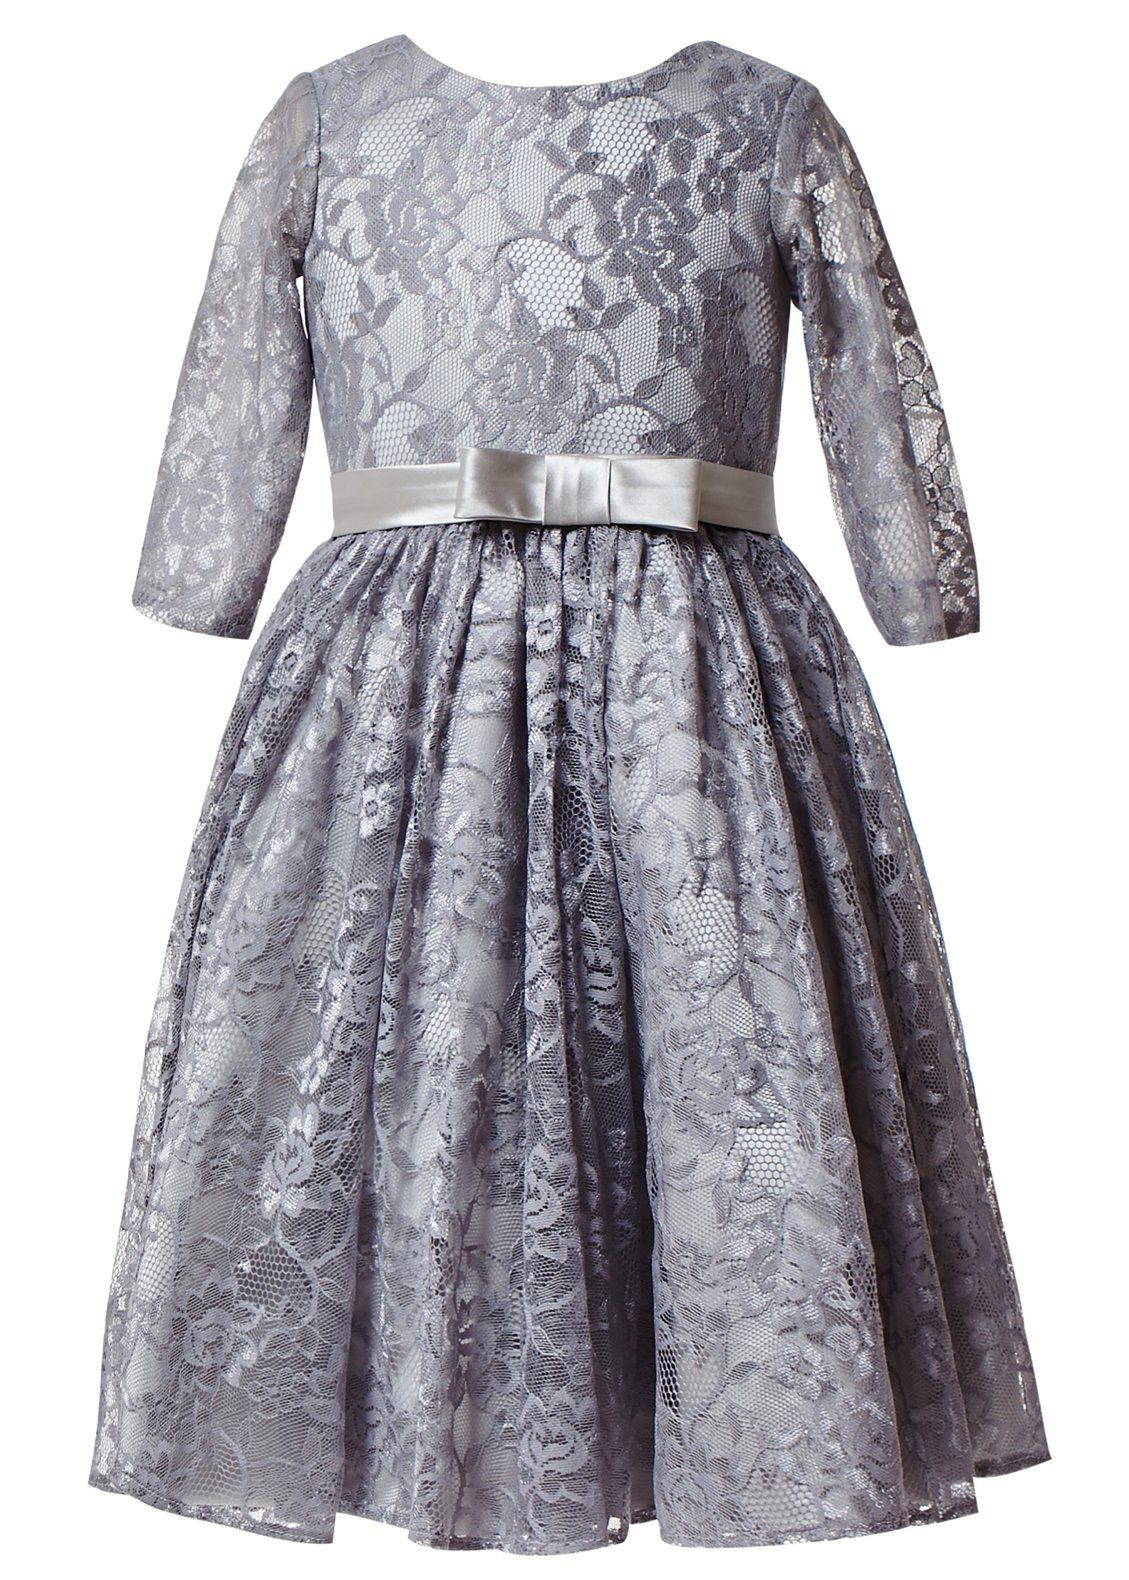 Princhar Girl S Grey Long Sleeves Lace Dresses Flower Girl Dress Formal Party Toddler Dresses Us 5t Fabr Long Sleeve Lace Dress Toddler Dress Long Sleeve Lace [ 1580 x 1129 Pixel ]